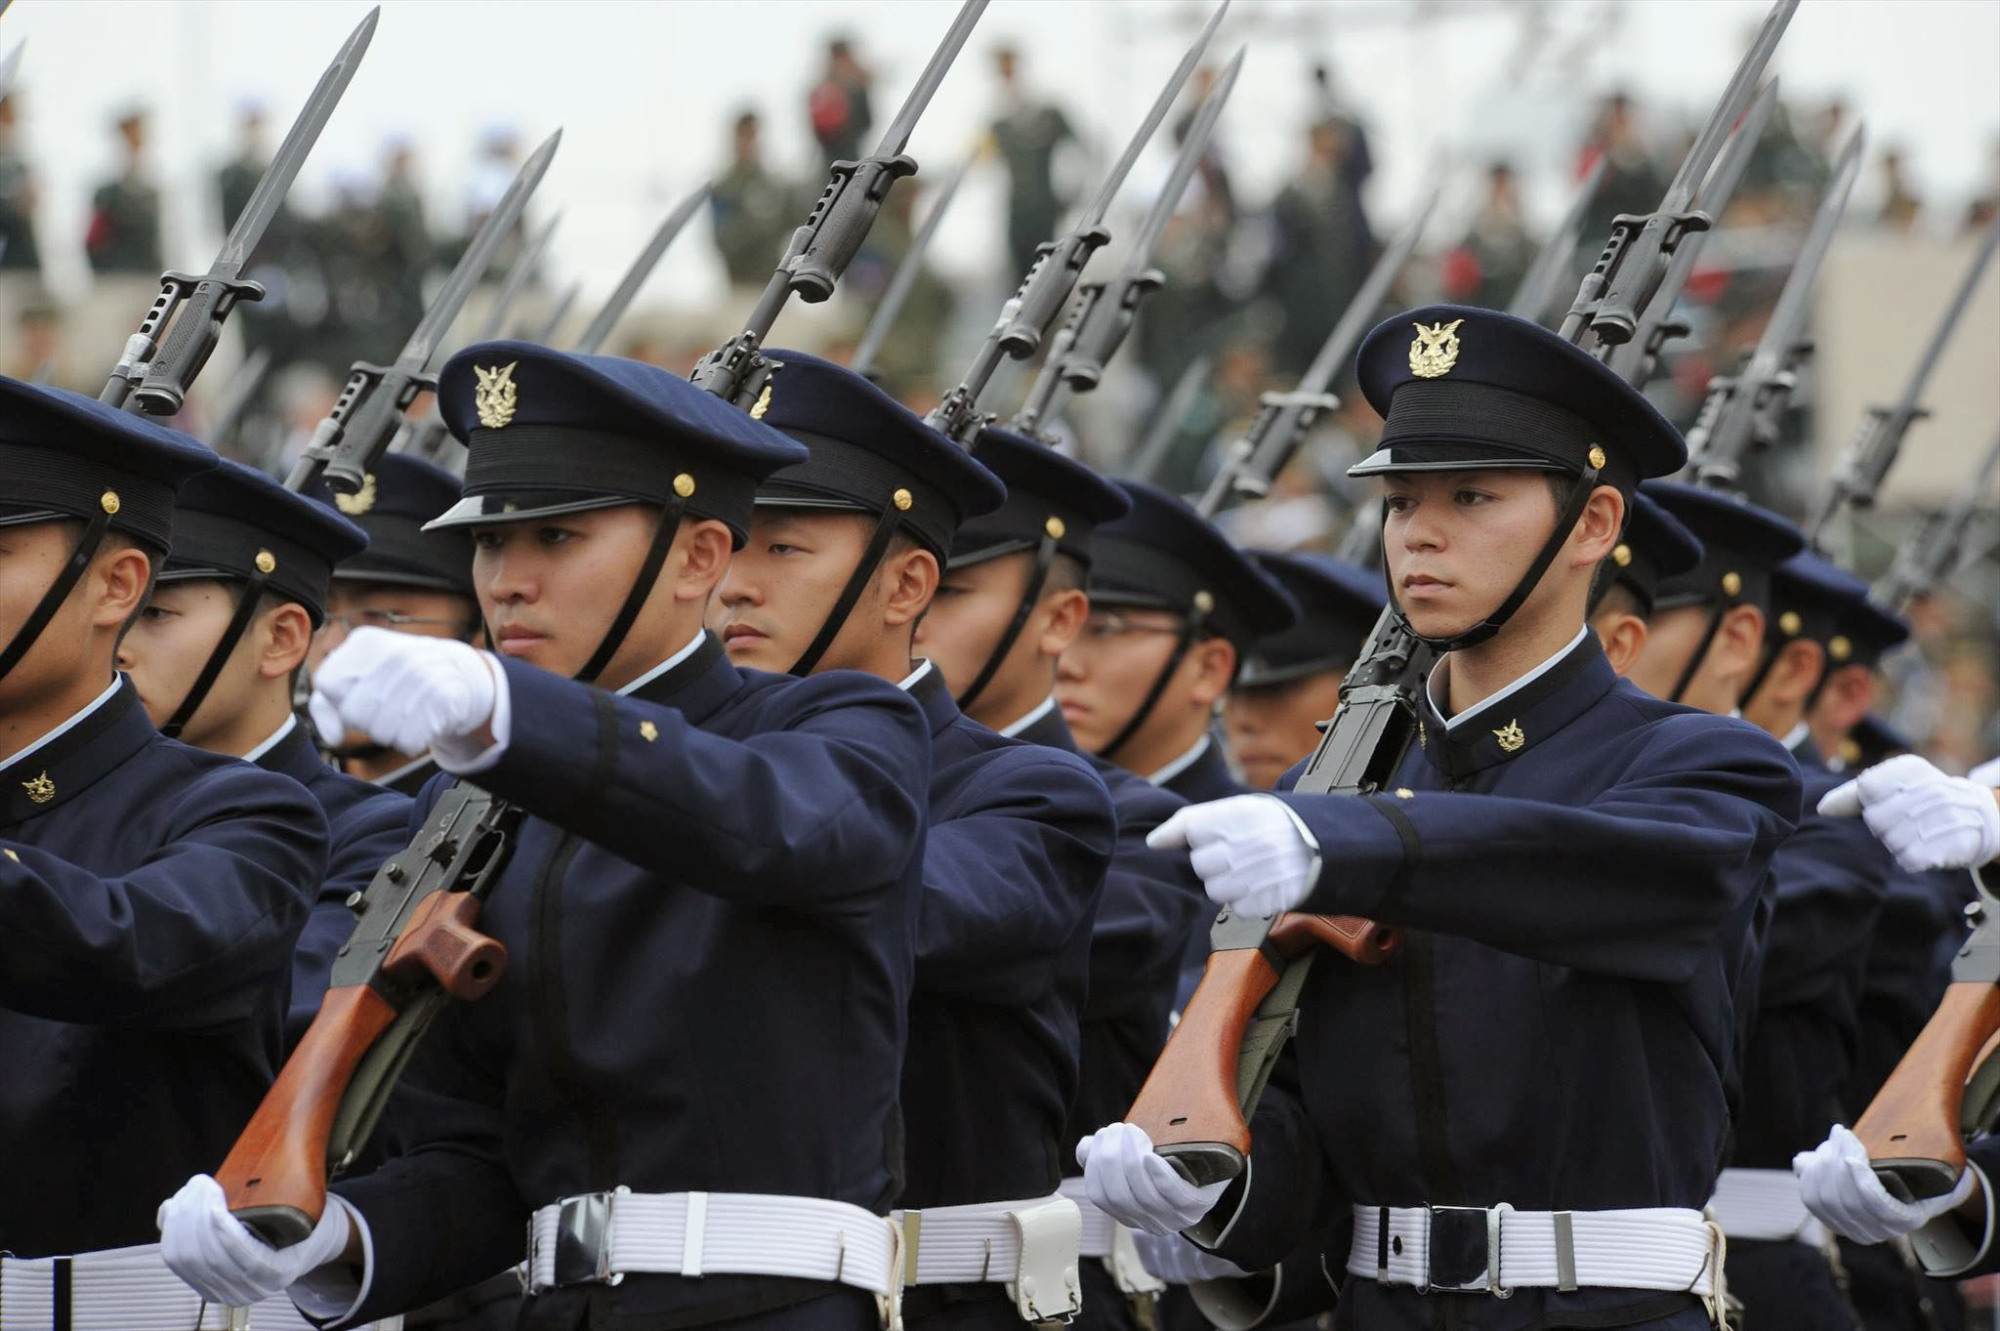 Ground Self-Defense Force personnel march in a parade Oct. 24, 2010. Under the Abe administration, Japan has been beefing up its defense capabilities as regional tensions rise.   GROUND SELF-DEFENSE FORCE